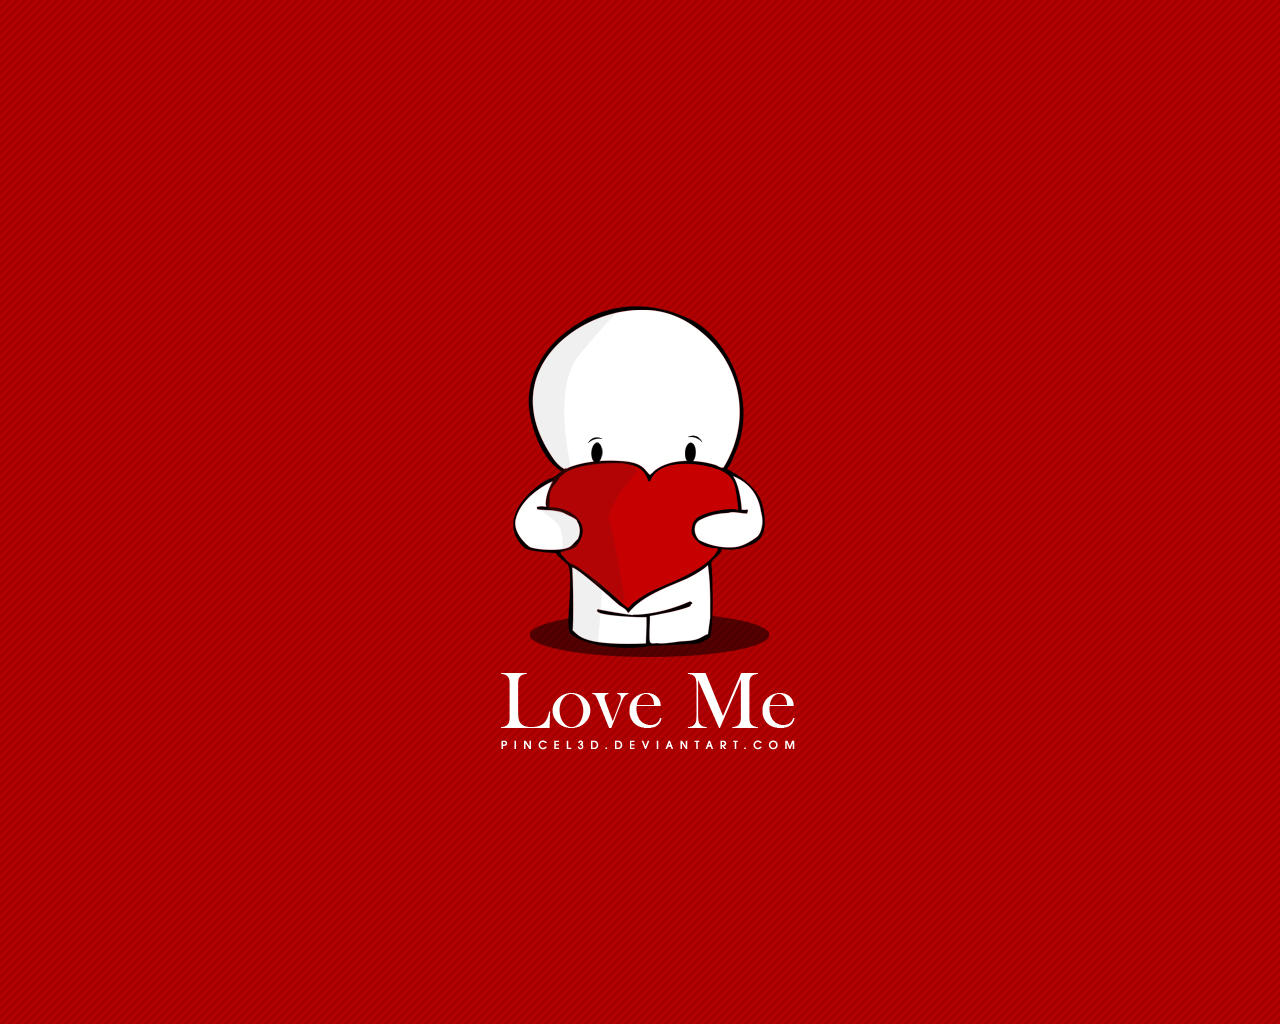 Love Me - Wallpaper by pincel3d